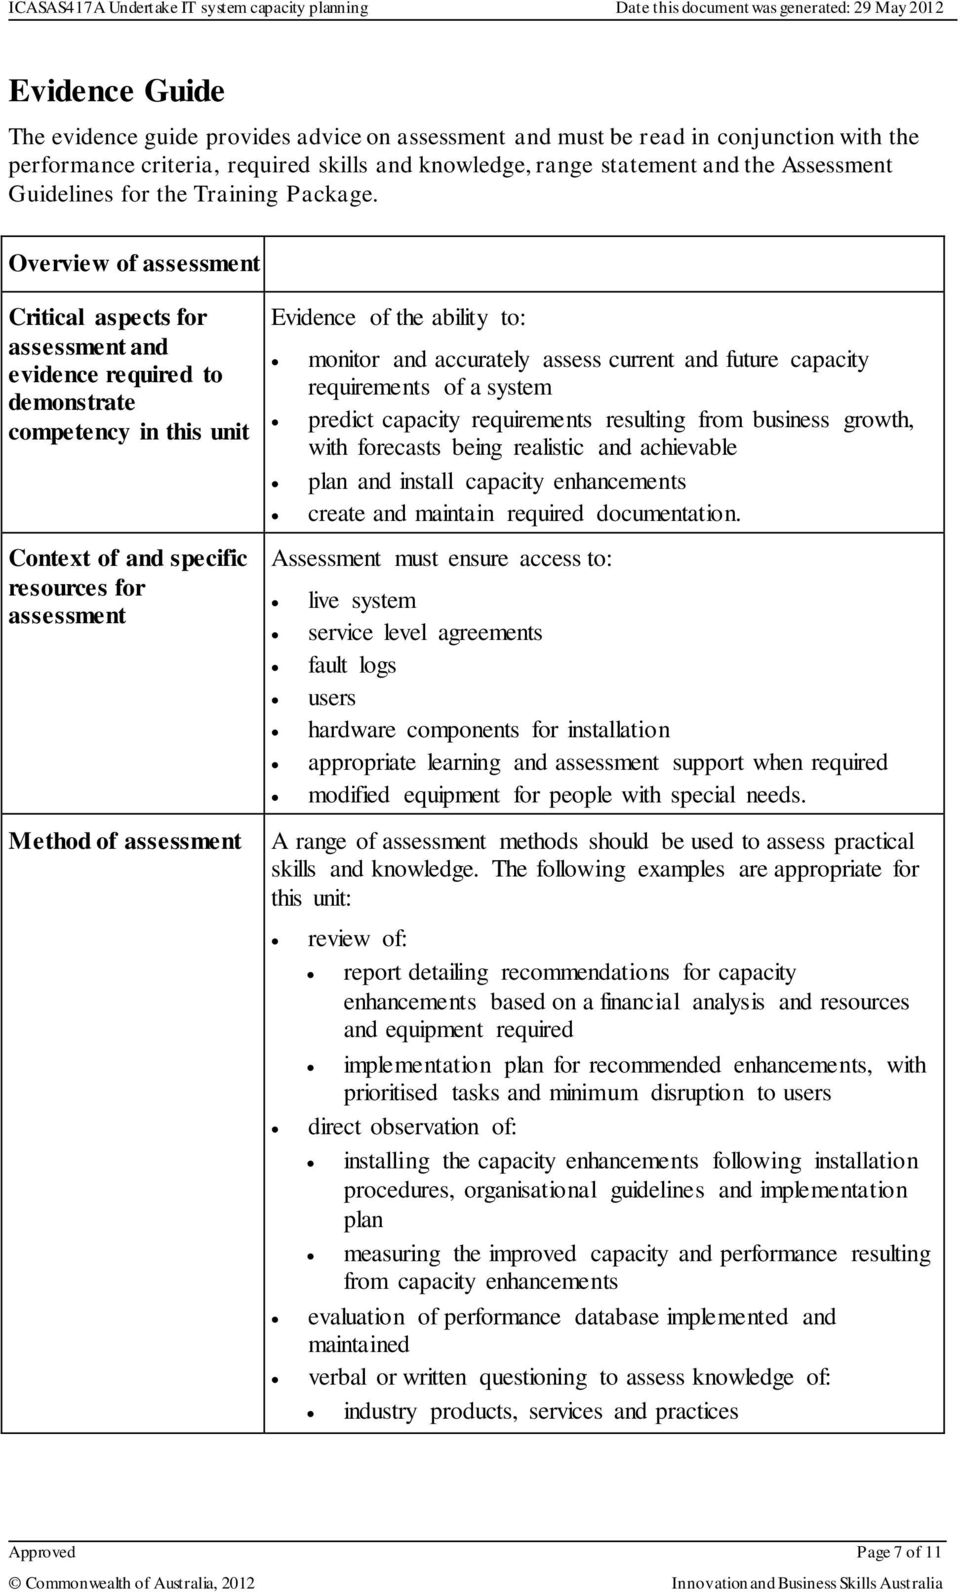 Overview of assessment Critical aspects for assessment and evidence required to demonstrate competency in this unit Context of and specific resources for assessment Method of assessment Evidence of